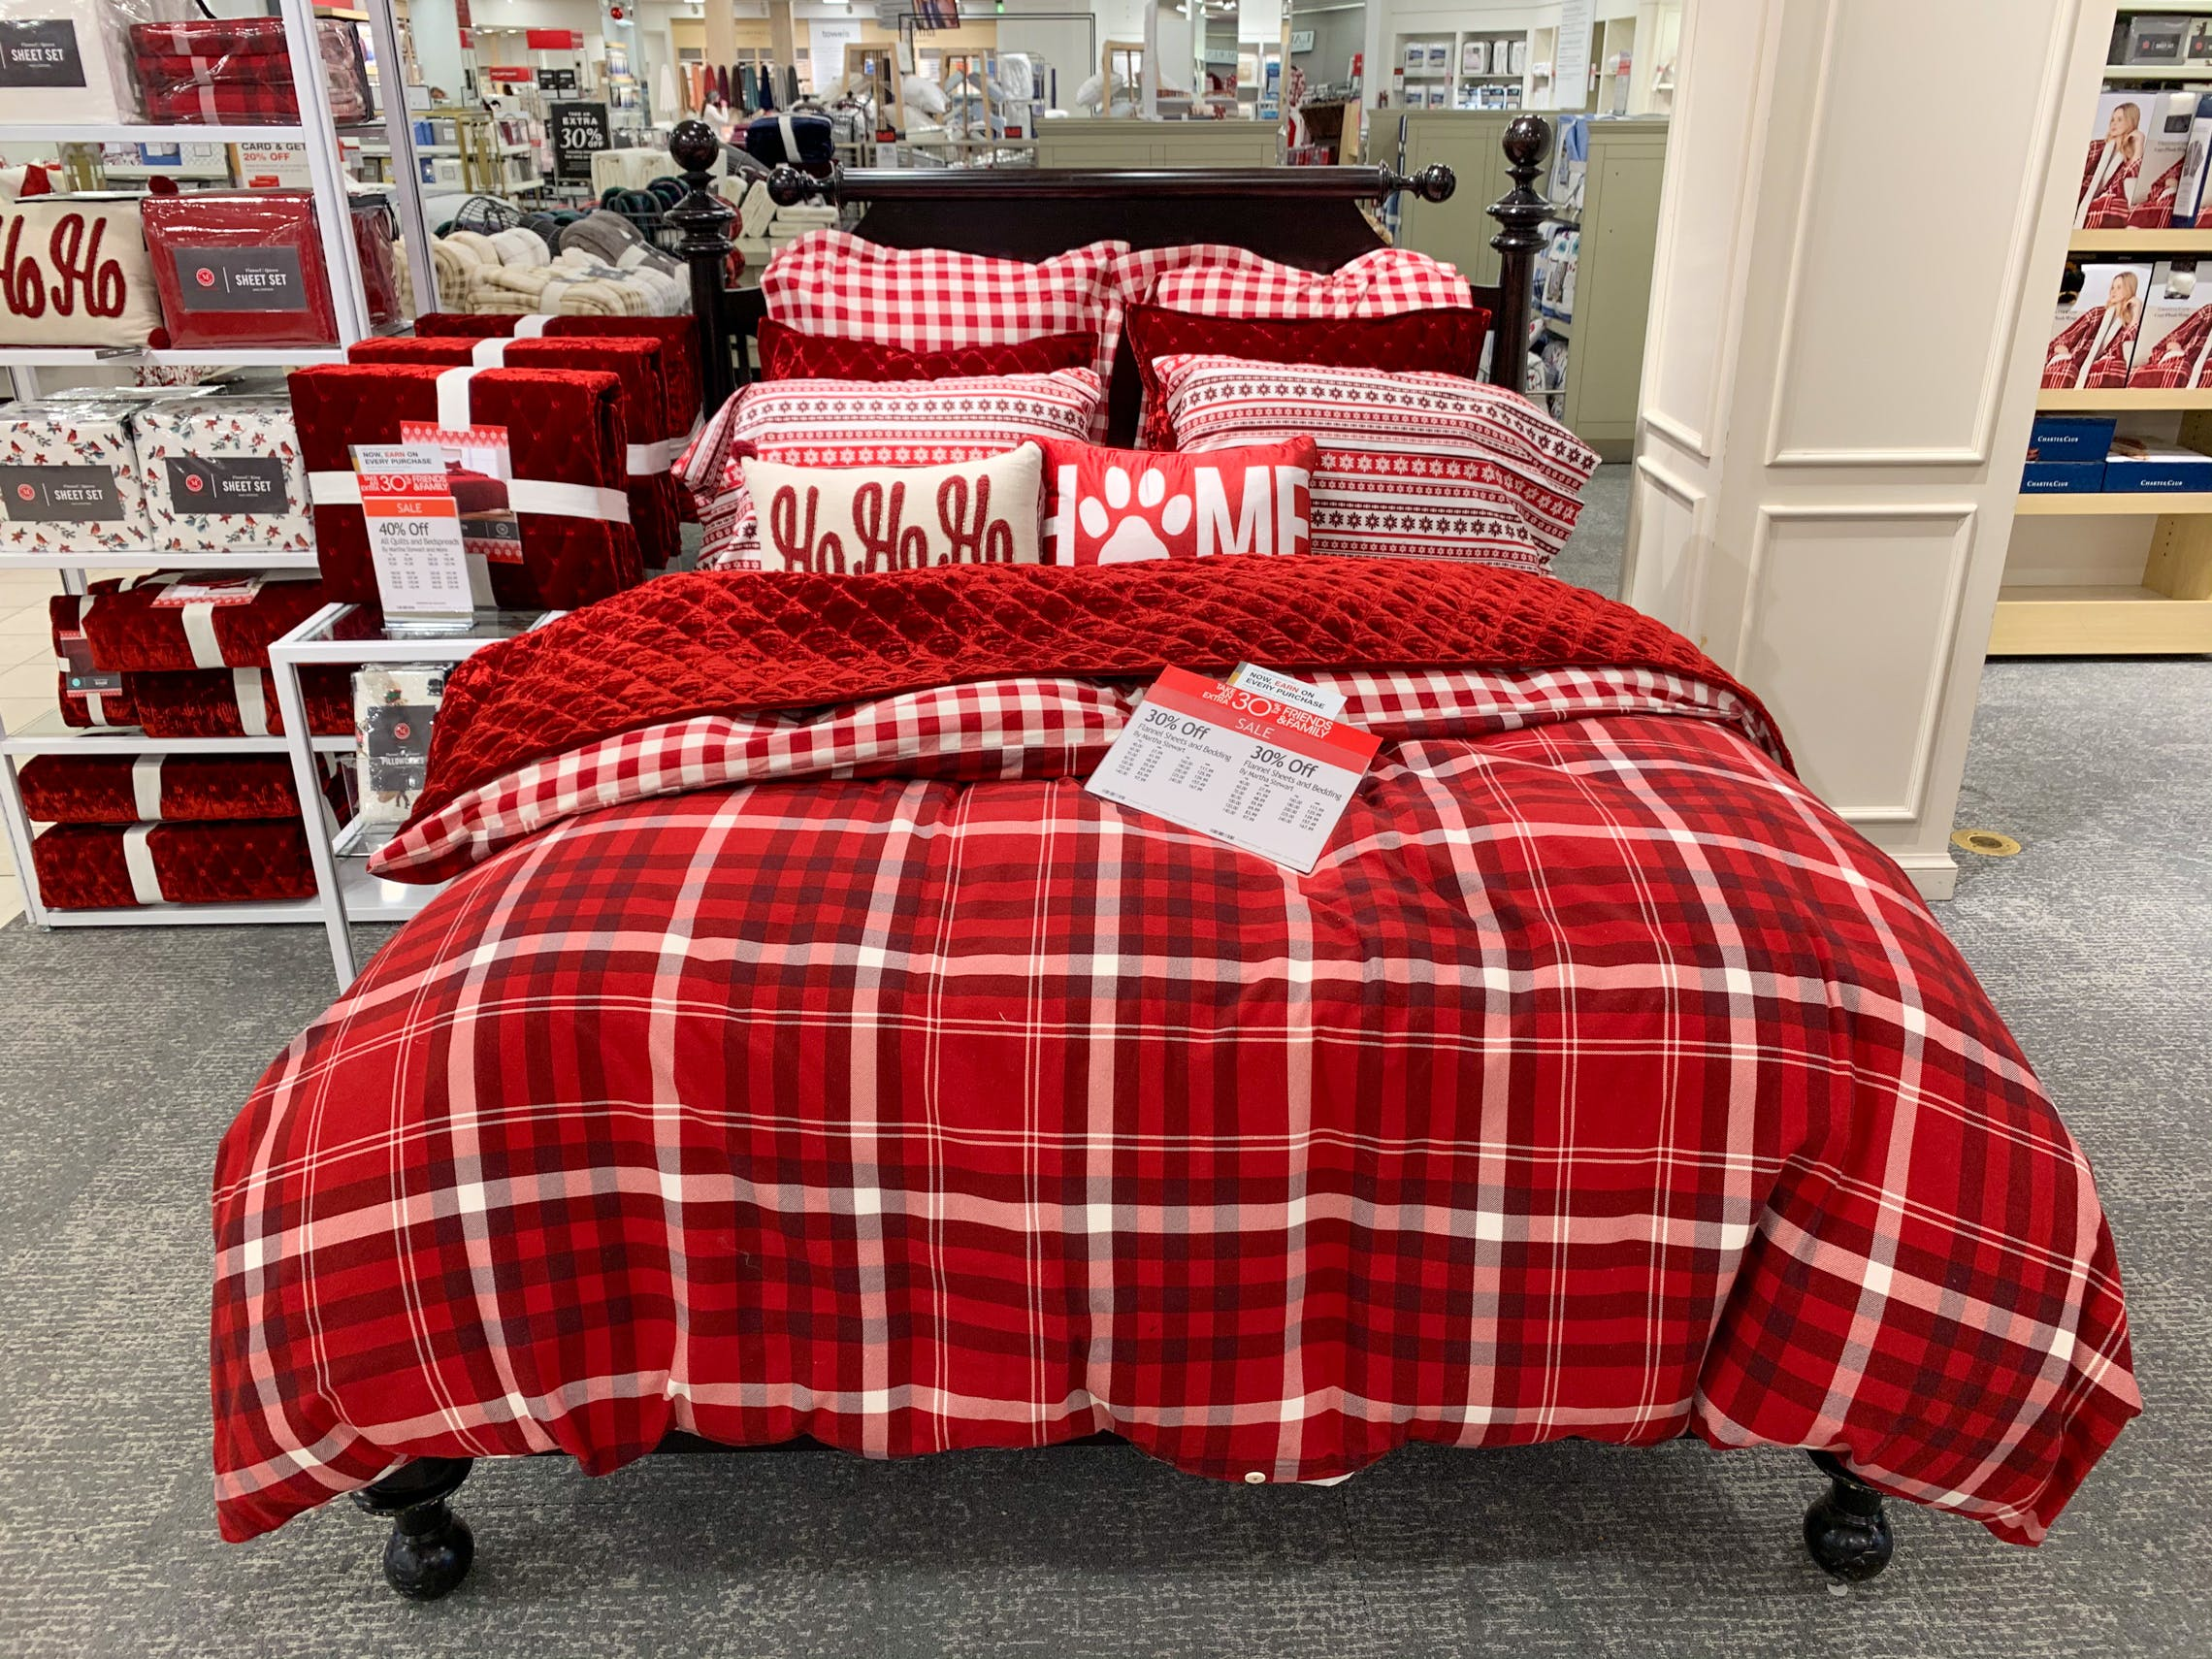 Martha Stewart Flannel Sheet Sets Bedding As Low As 25 At Macy S The Krazy Coupon Lady